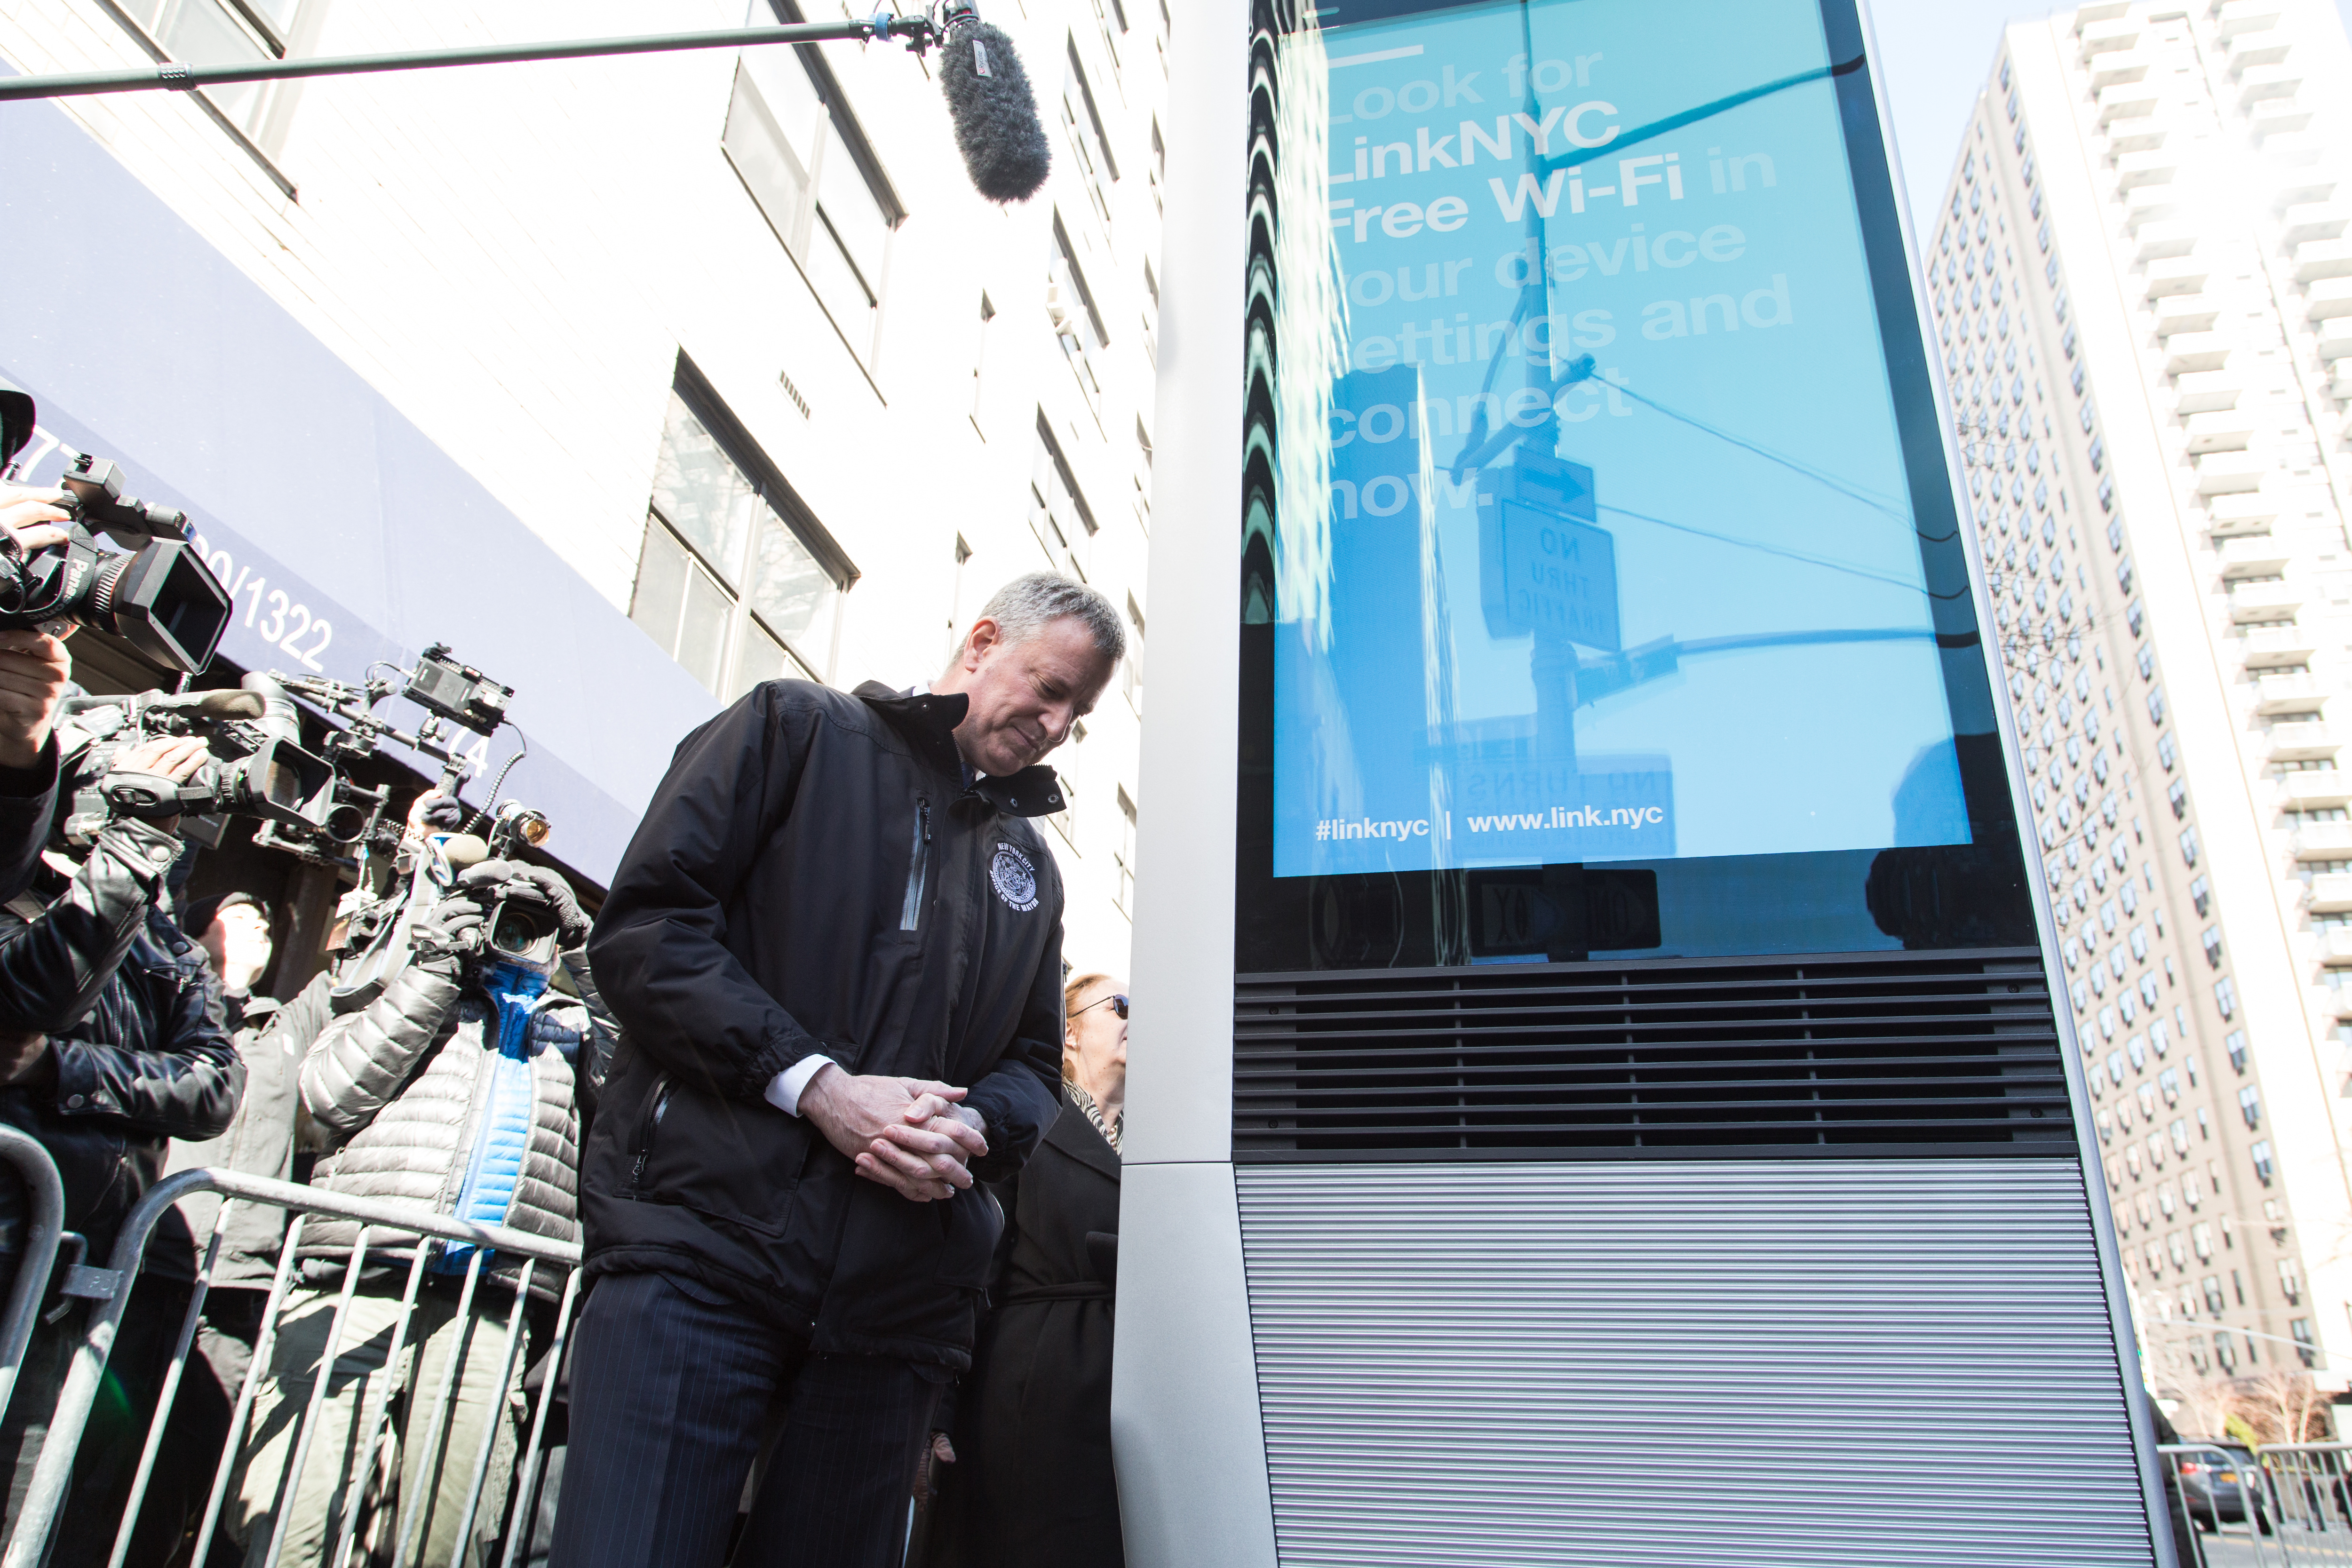 NEW YORK CITY, NY, UNITED STATES - 2016/02/18: Mayor de Blasio announces public launch of LINKNYC program, the largest and fastest free municipal WIFI network in the world. (Photo by Louise Wateridge/Pacific Press/LightRocket via Getty Images)